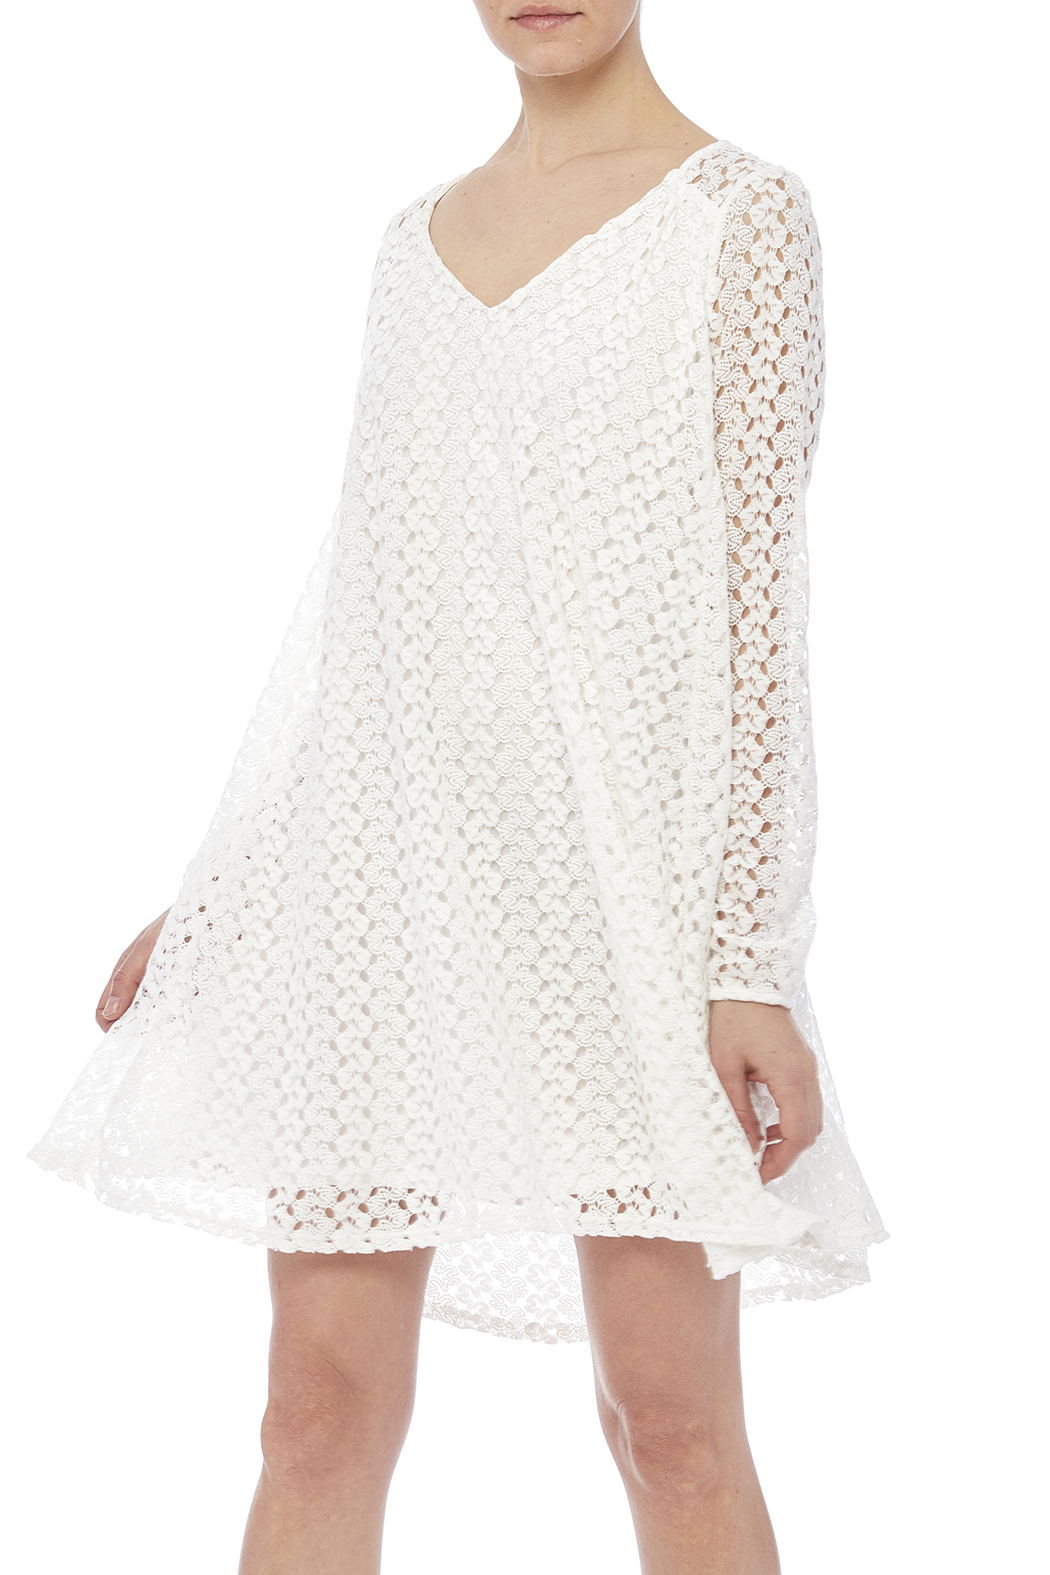 Peach Love California White Lace Dress - Front Cropped Image